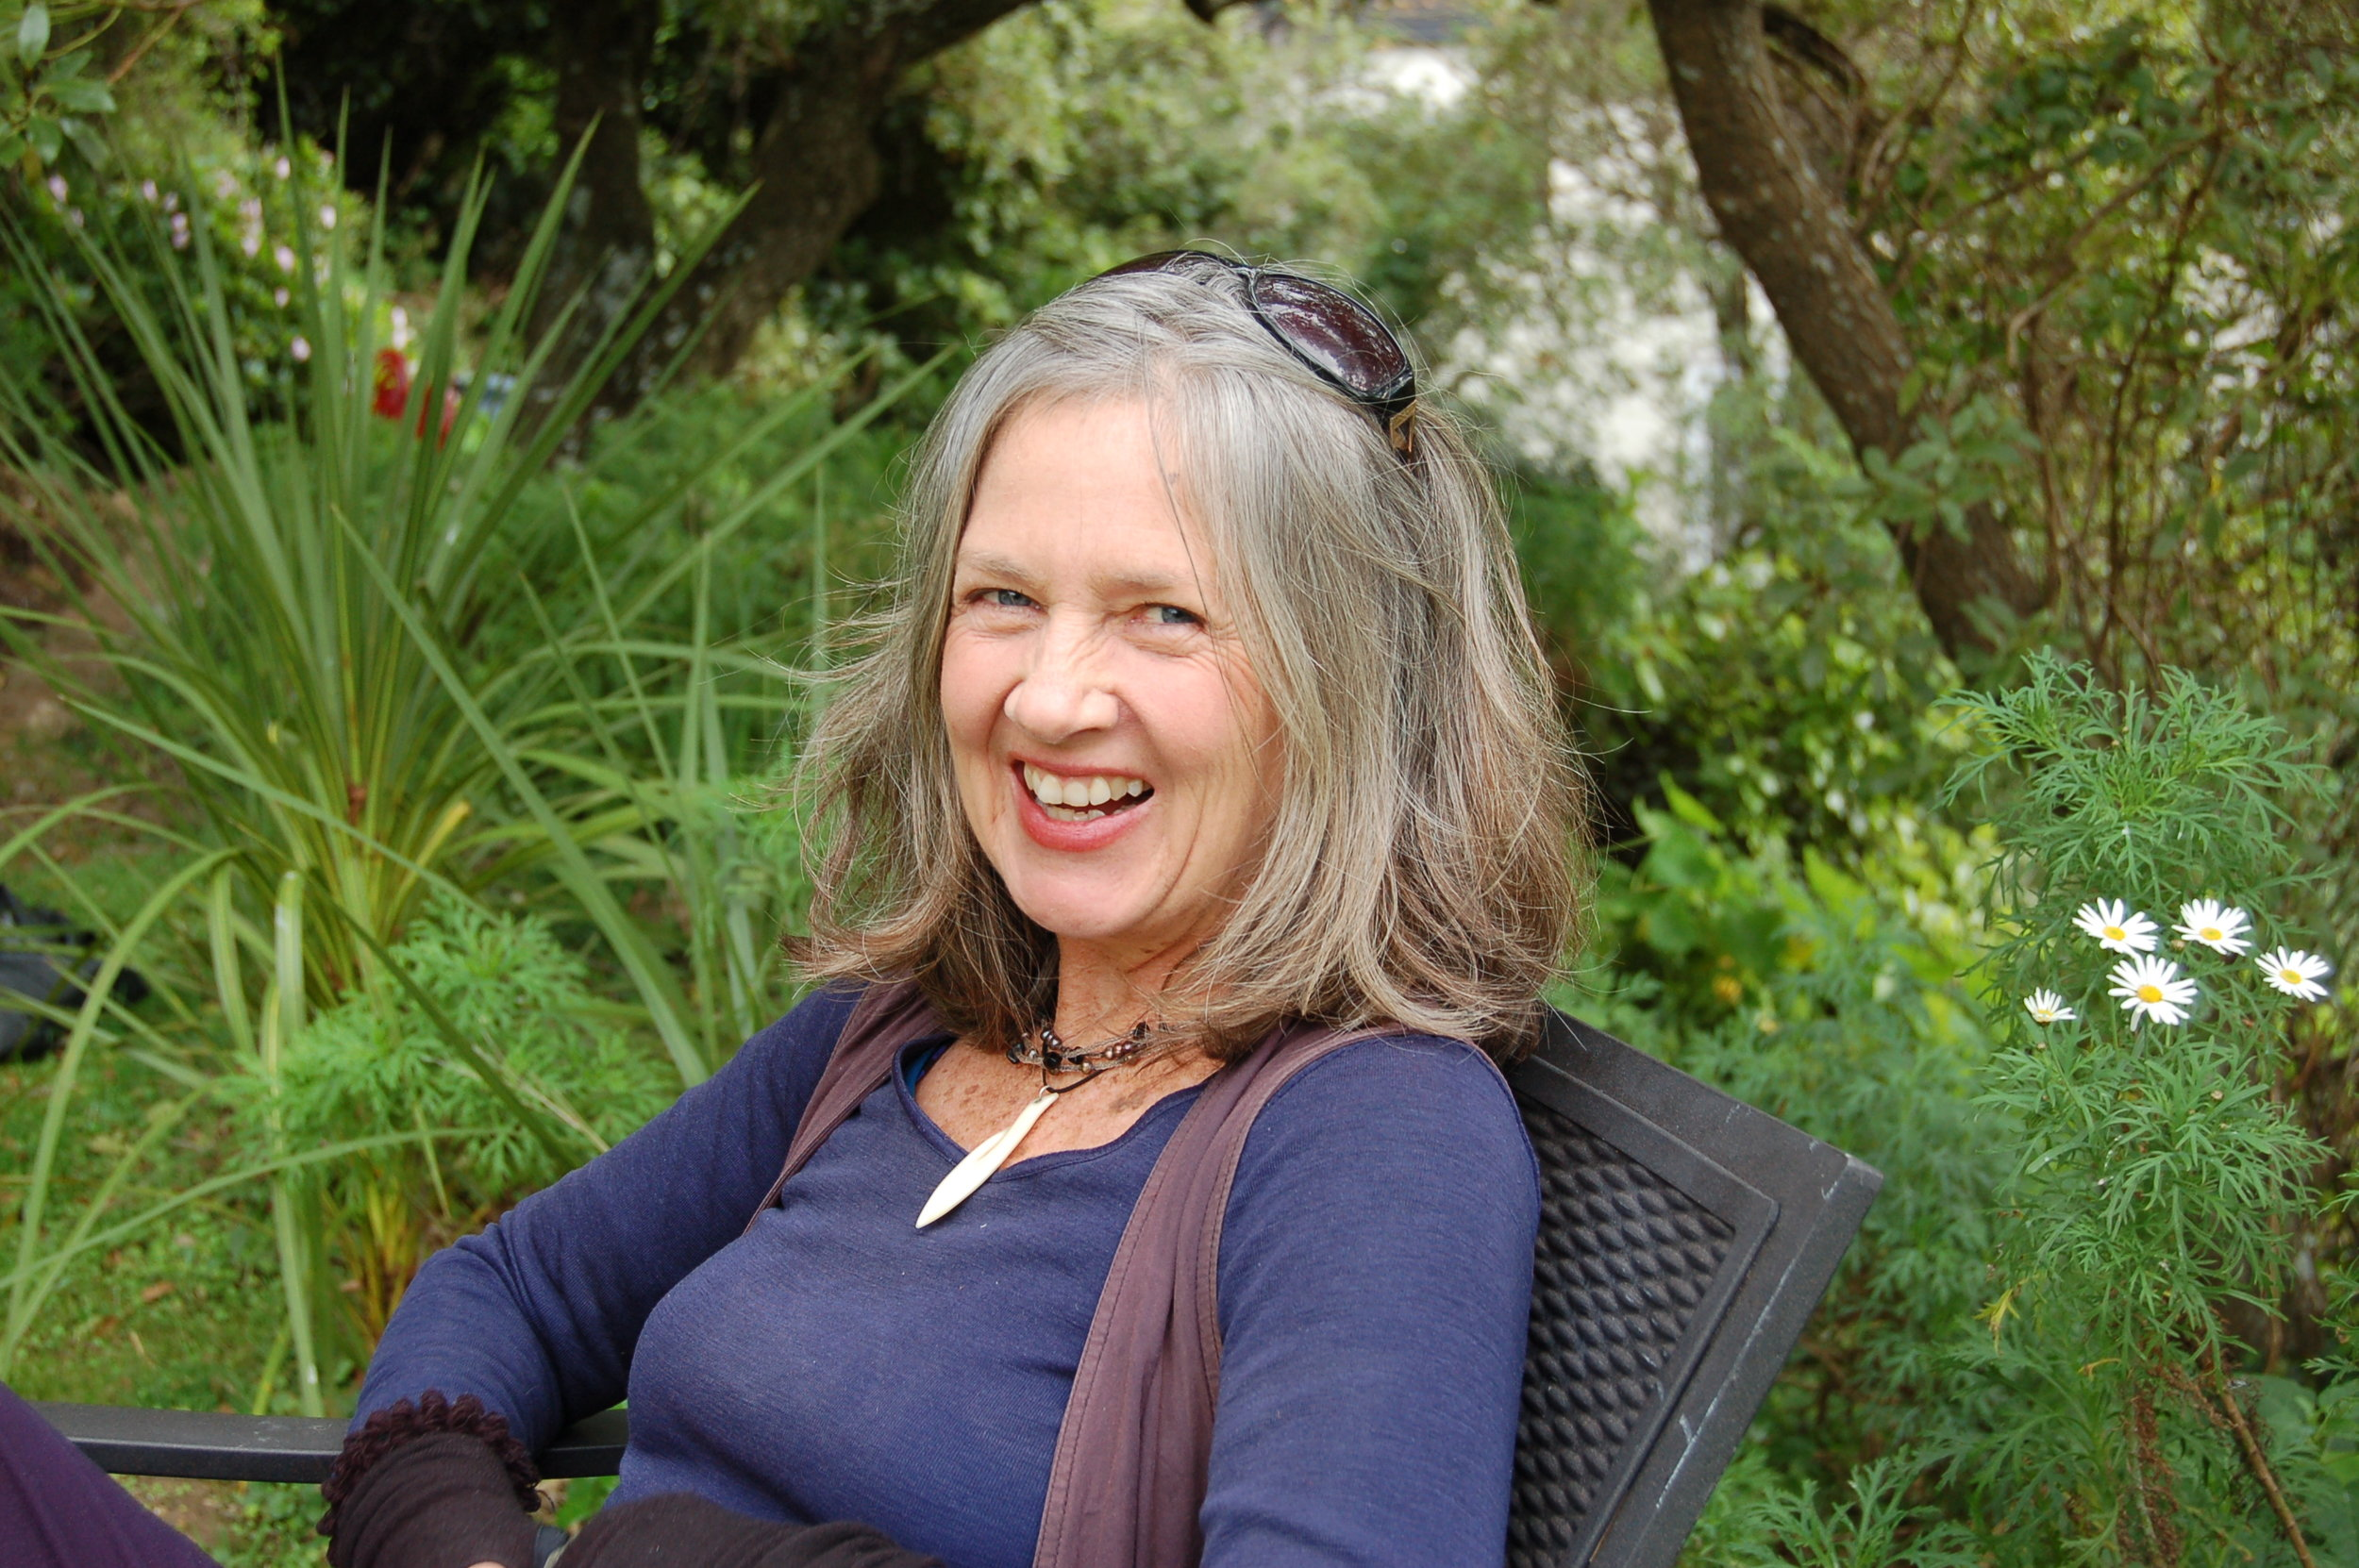 rachel tobin and the art of mindfulness - courses, workshops retreats and mindfulness training in New zealand